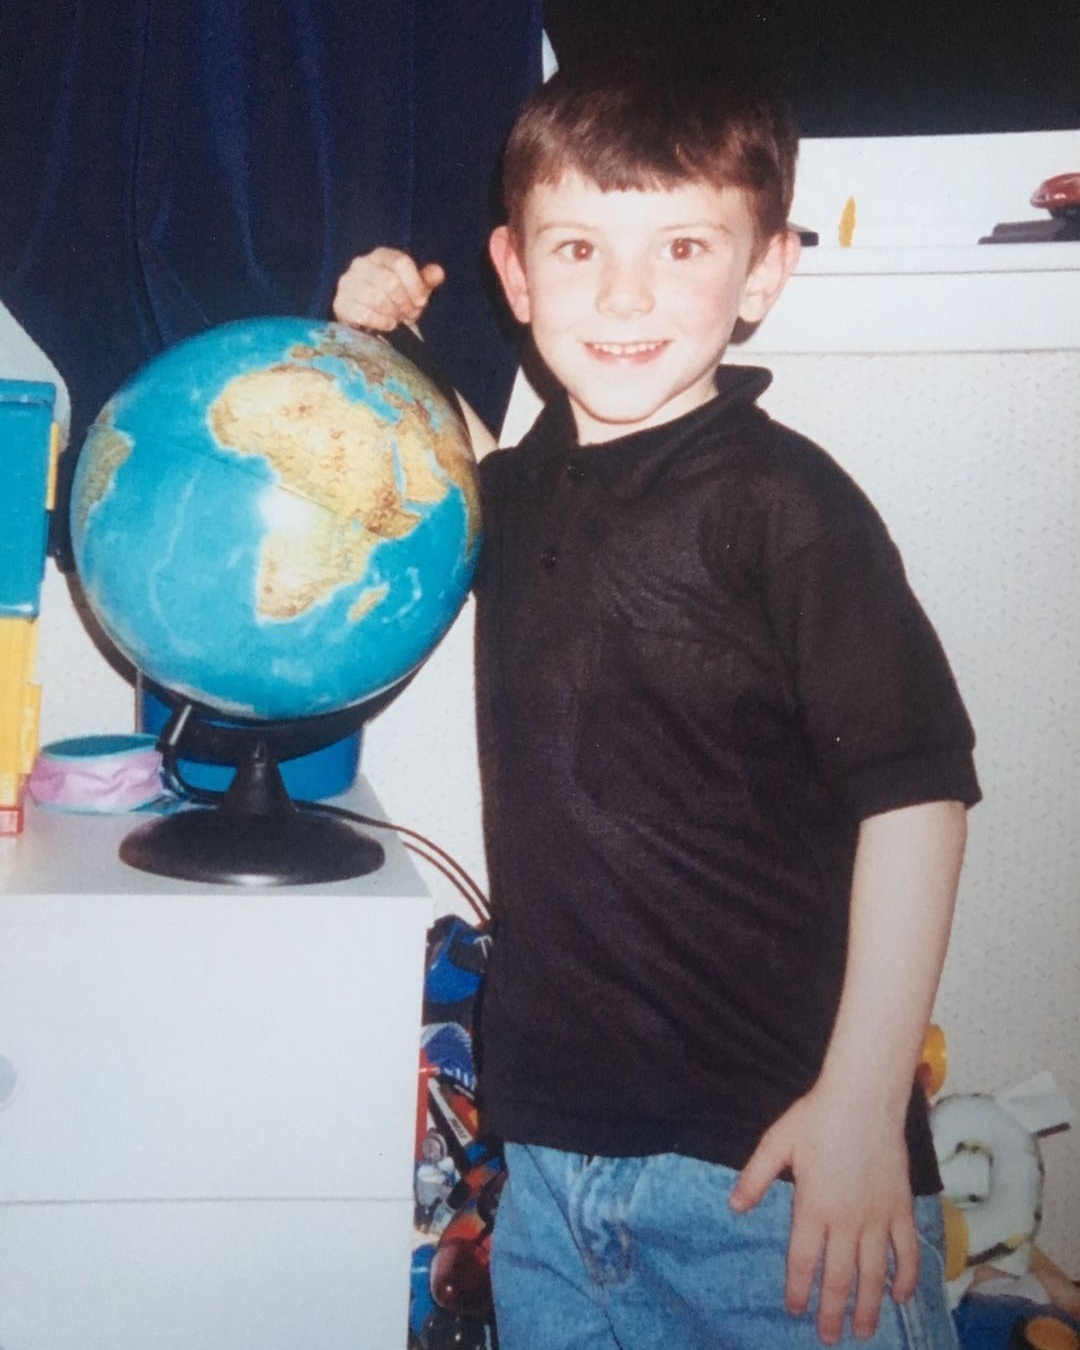 Globes are Cool